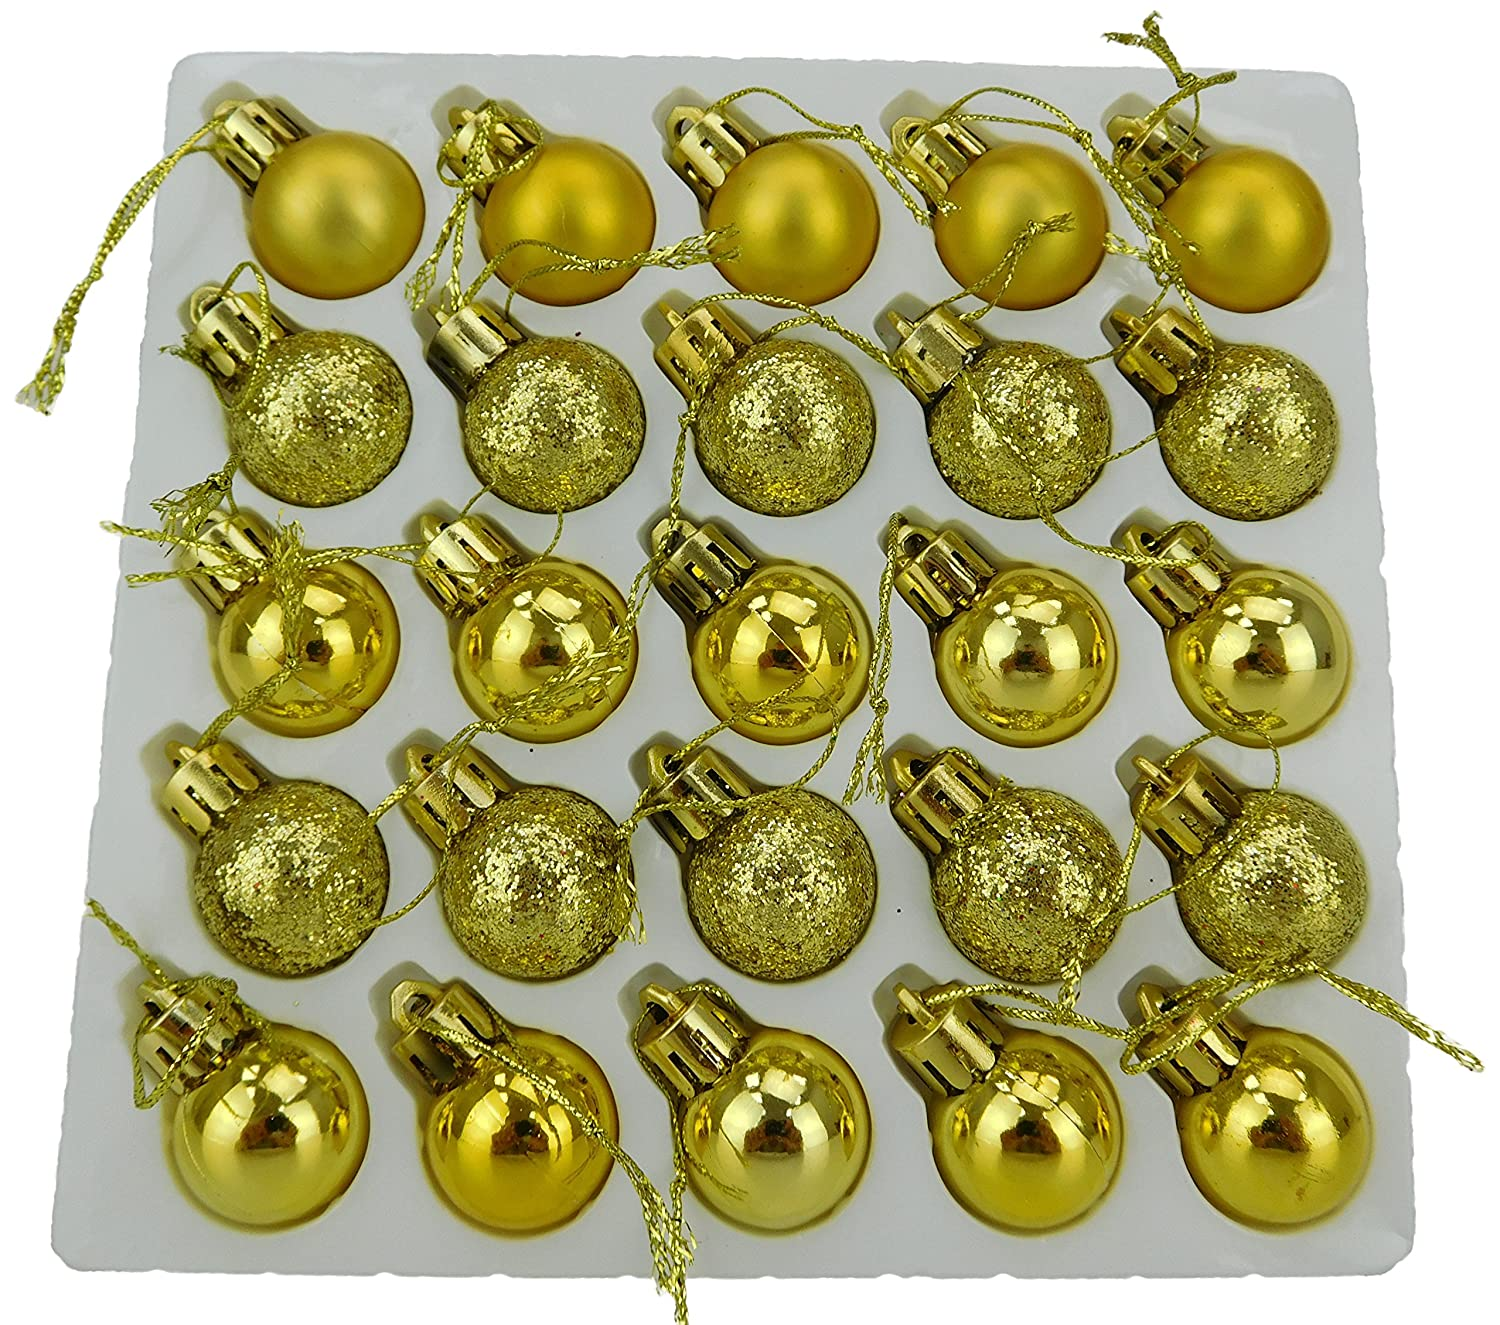 Christmas Concepts® Pack of 25-25mm Mini Christmas Tree Baubles - Shiny, Matte & Glitter Decorated Baubles (Champagne)